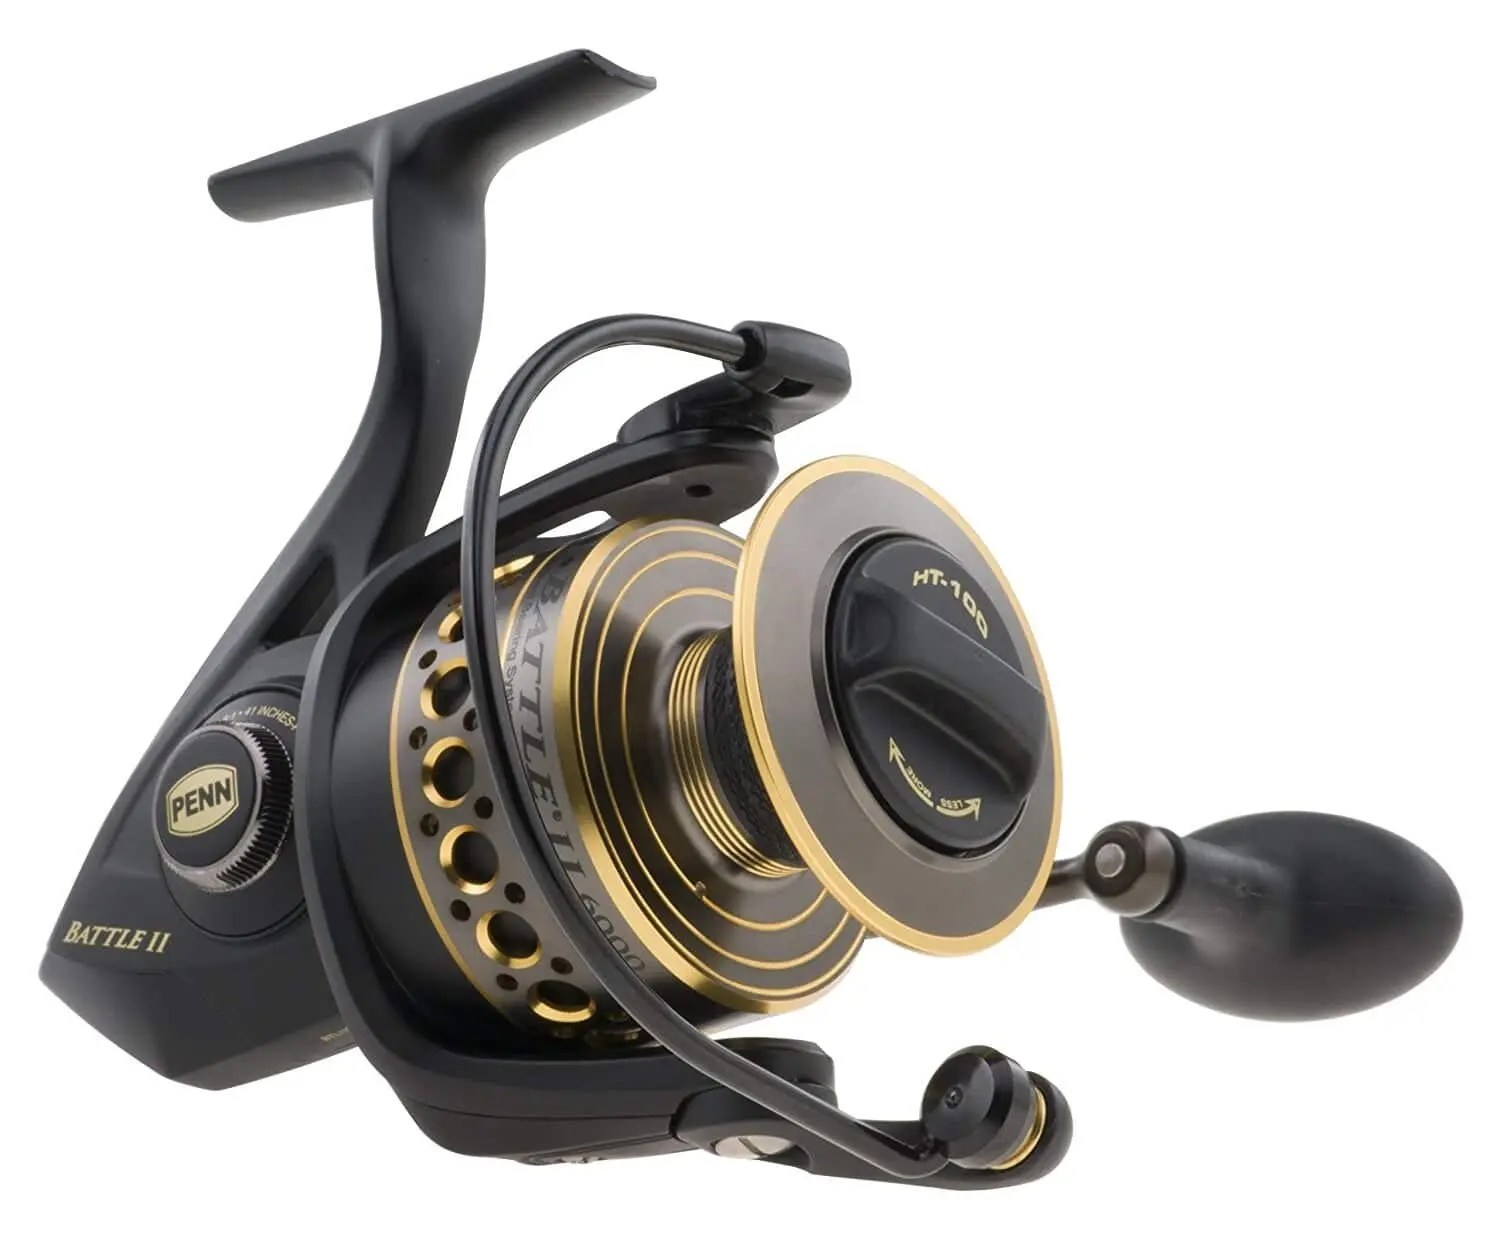 Penn Battle II Spinning Fishing Reel